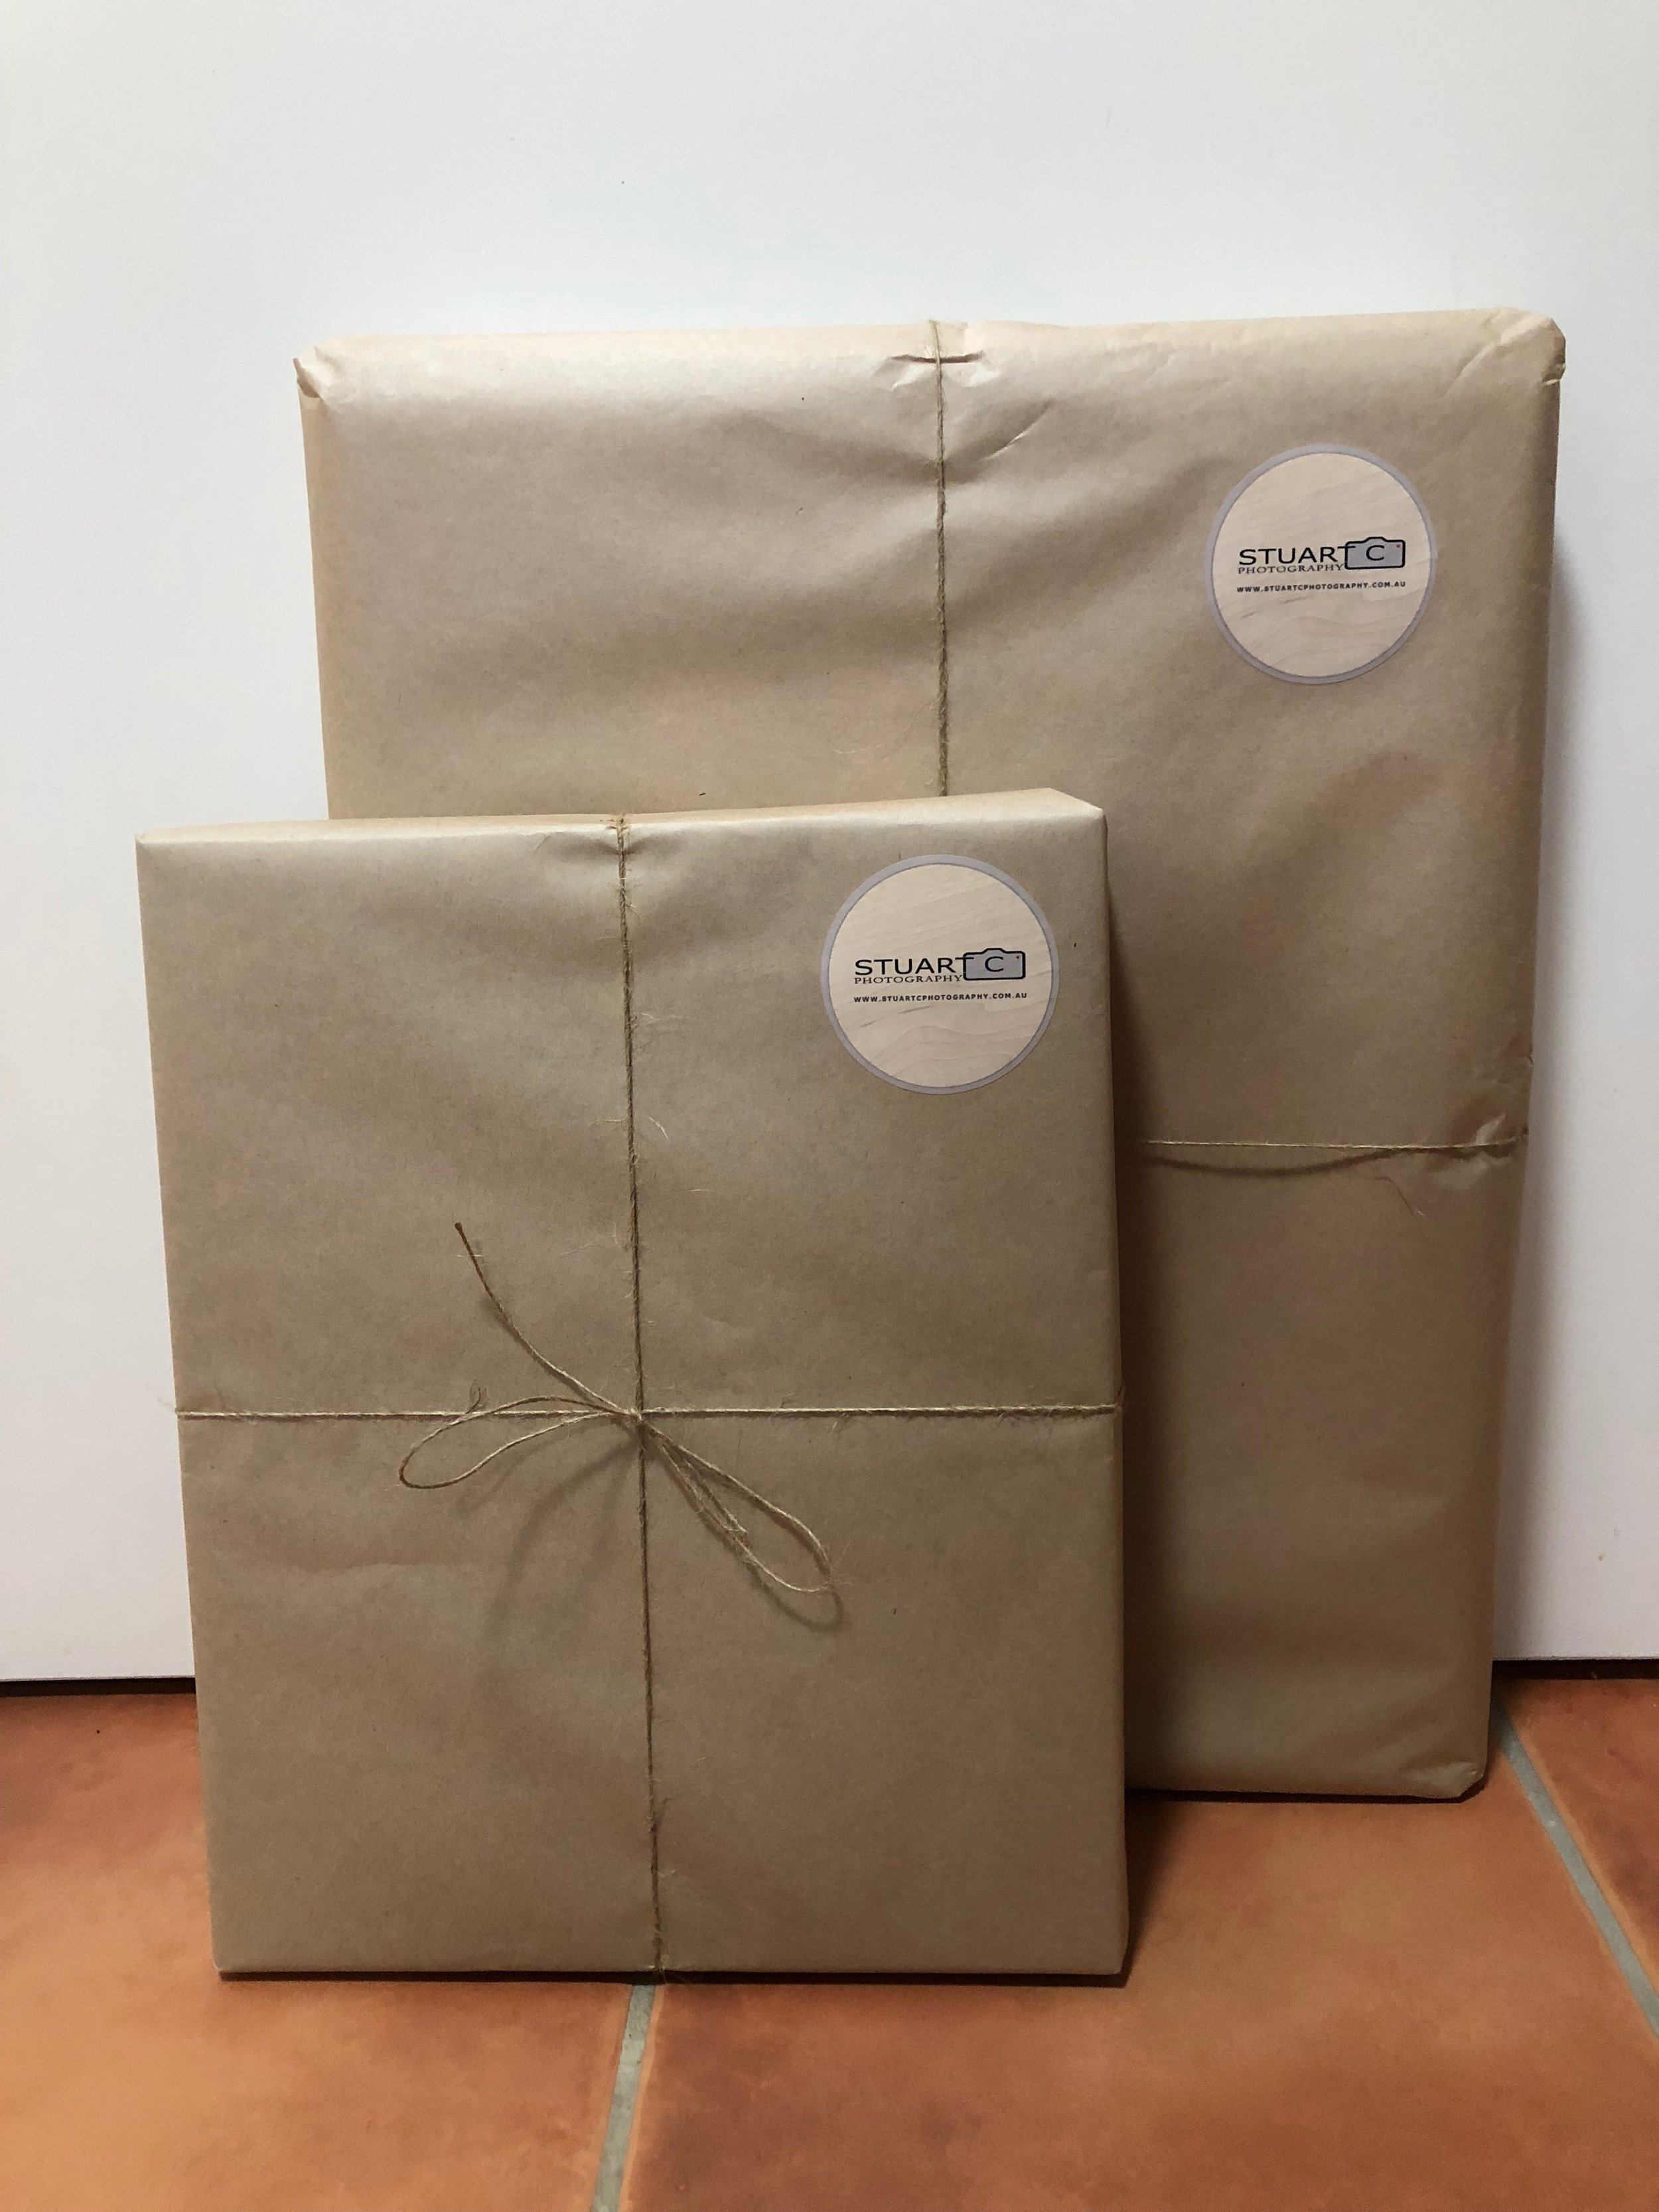 Prints and Canvas wrapped up ready to deliver